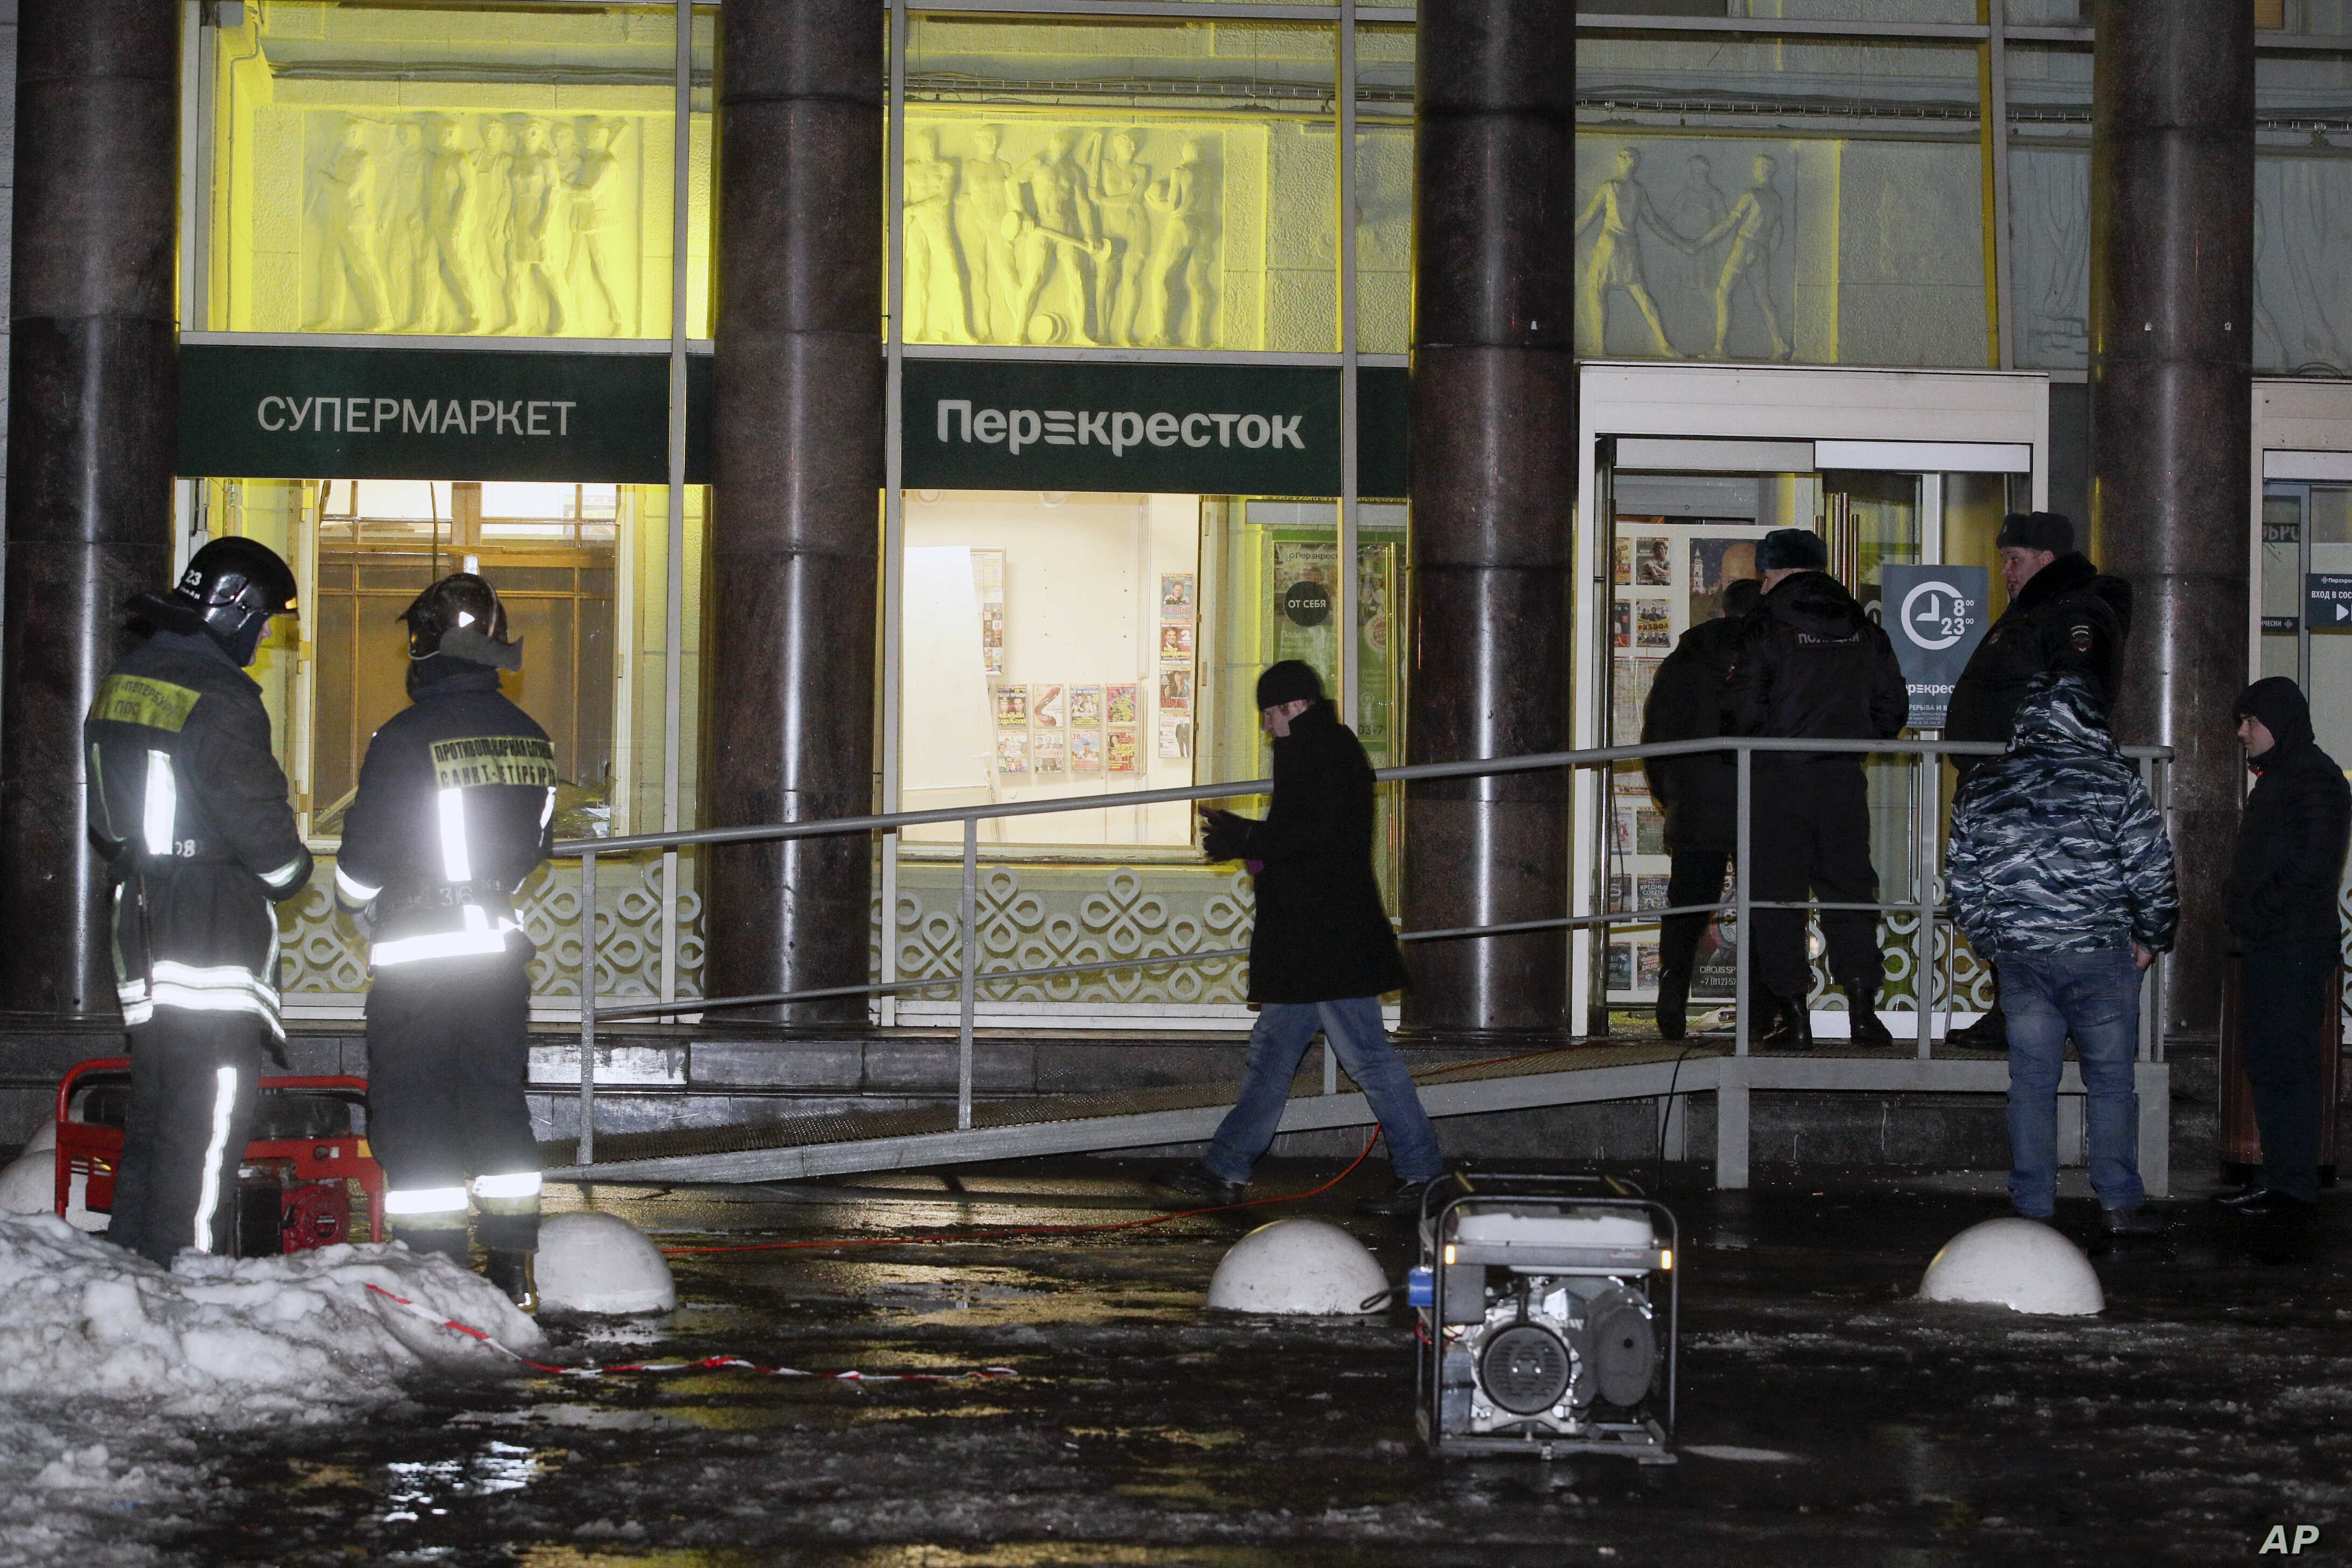 Report: Suspect Detained in St  Petersburg Supermarket Blast | Voice